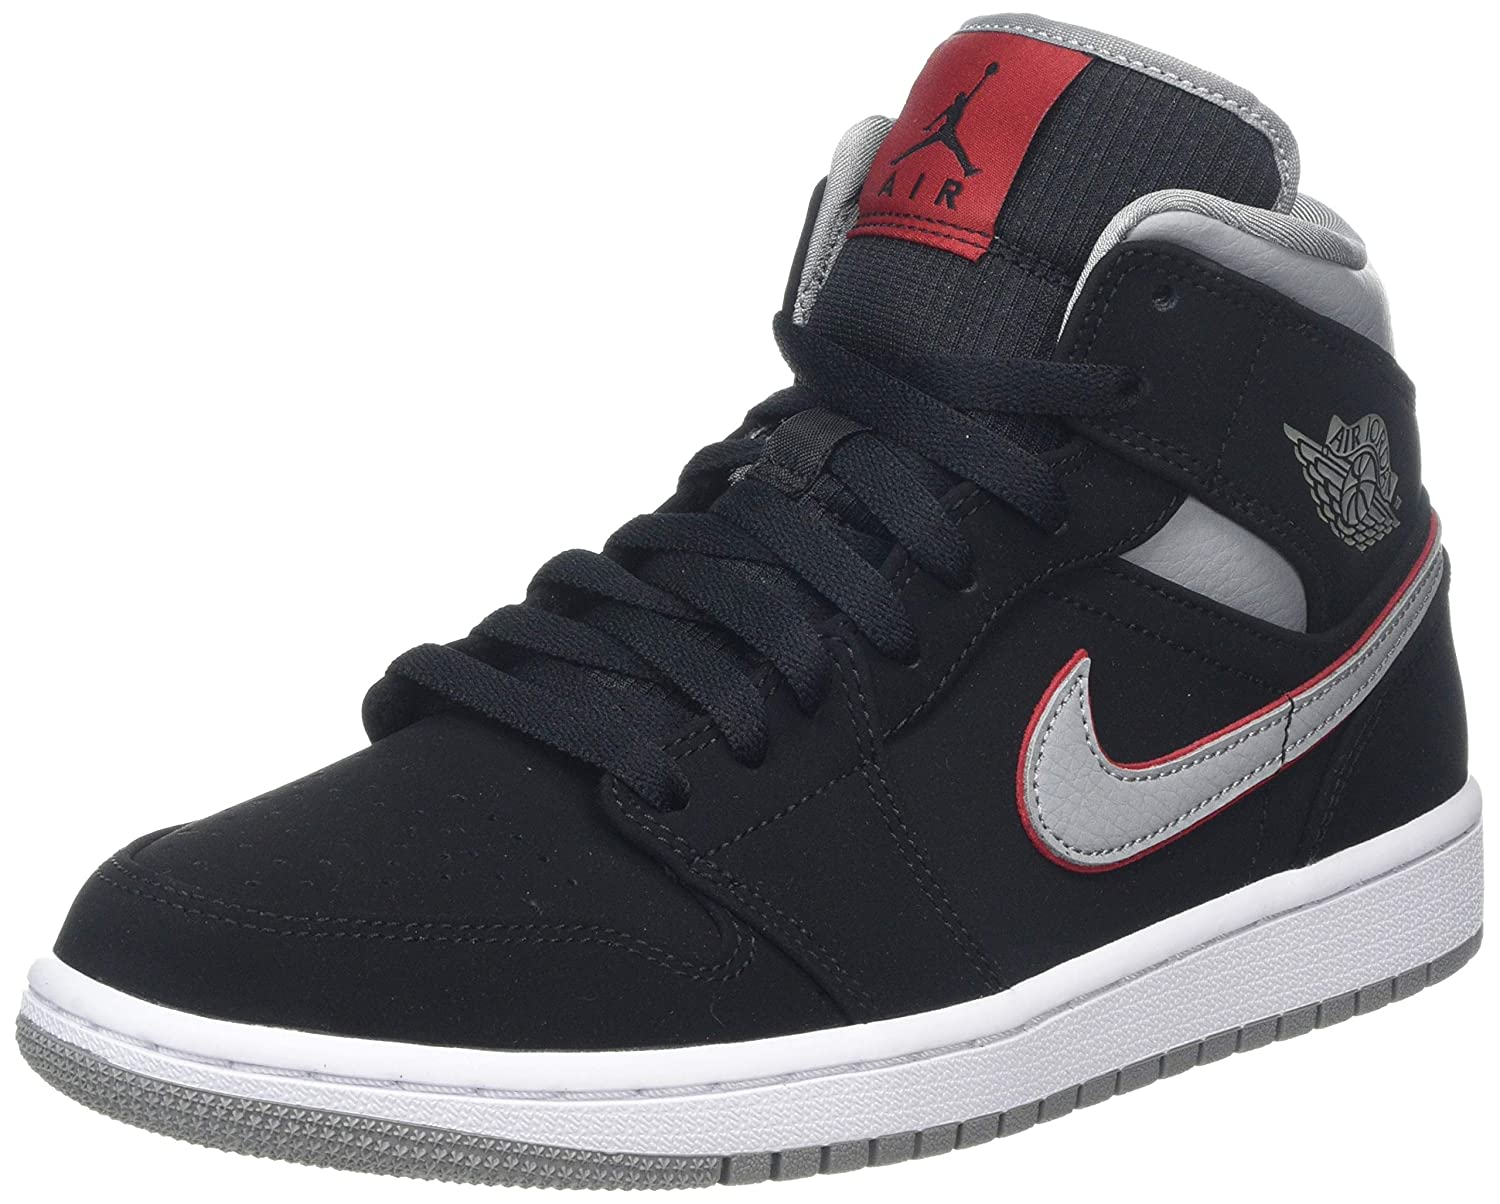 énorme réduction 381d0 84b4e Amazon.com | Nike - Air Jordan I Mid - 554724060 | Basketball